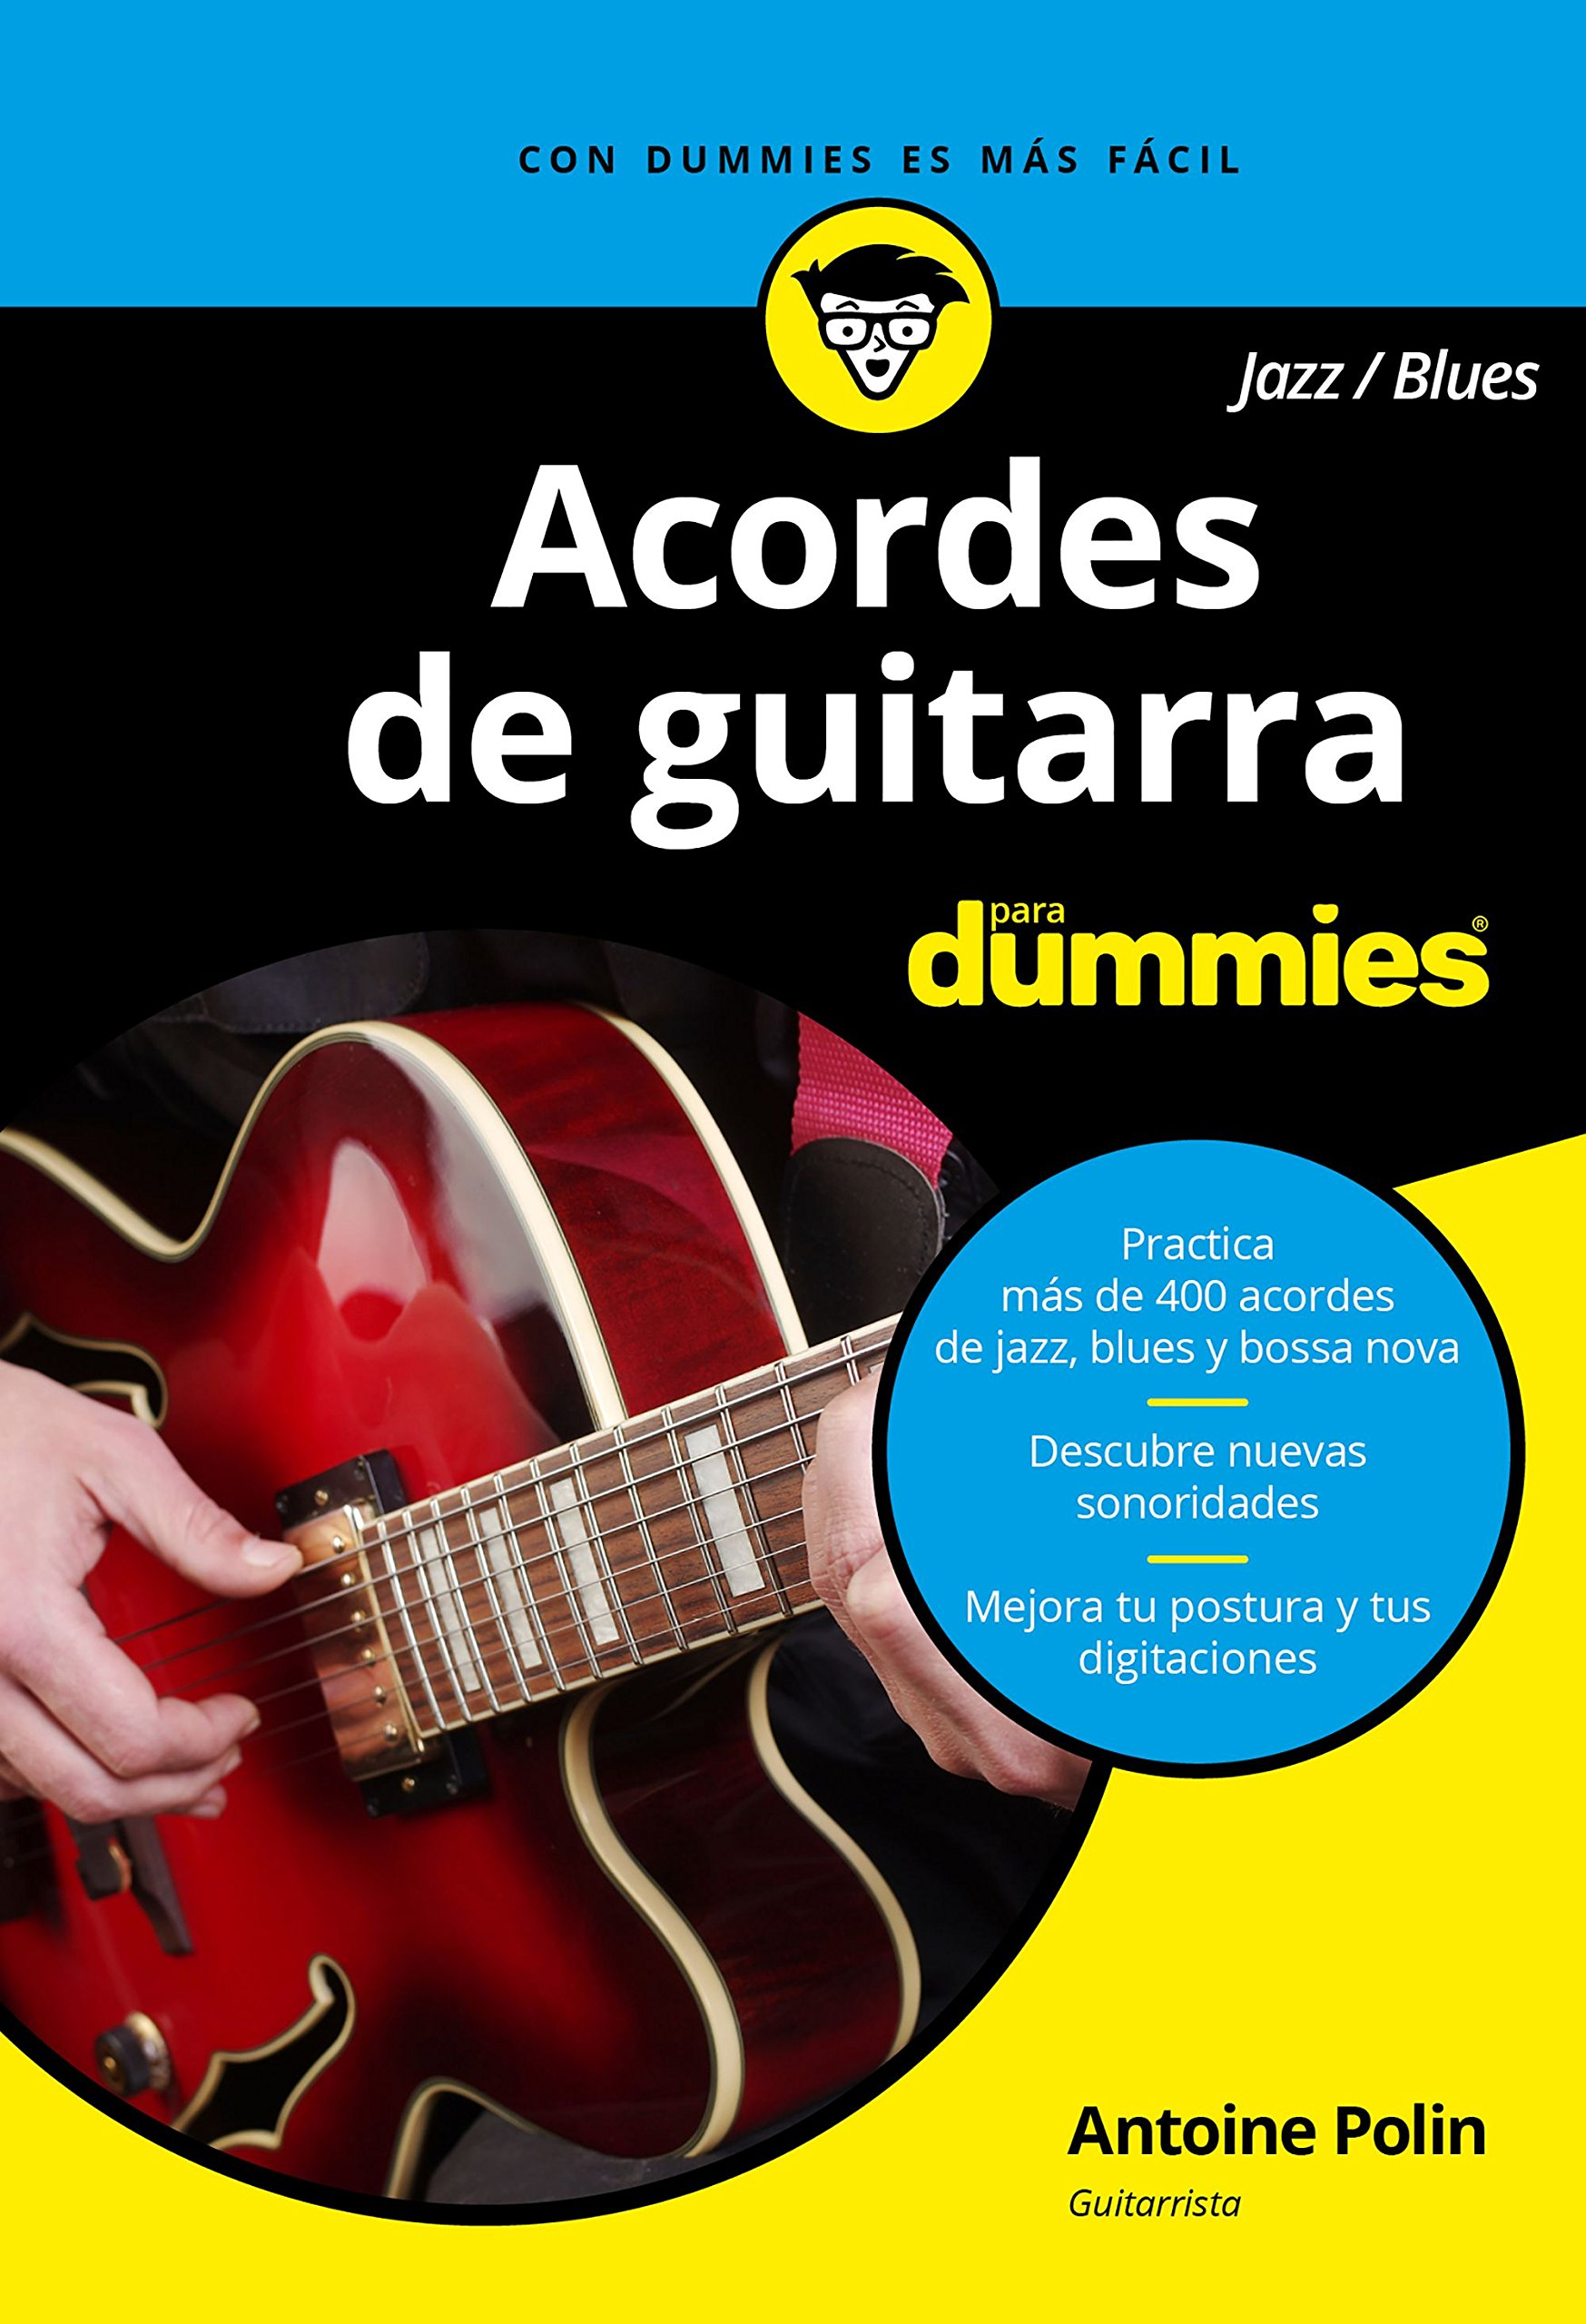 Acordes de guitarra blues/jazz para Dummies: Amazon.es: Antoine Polin, Pilar Recuero Gil: Libros